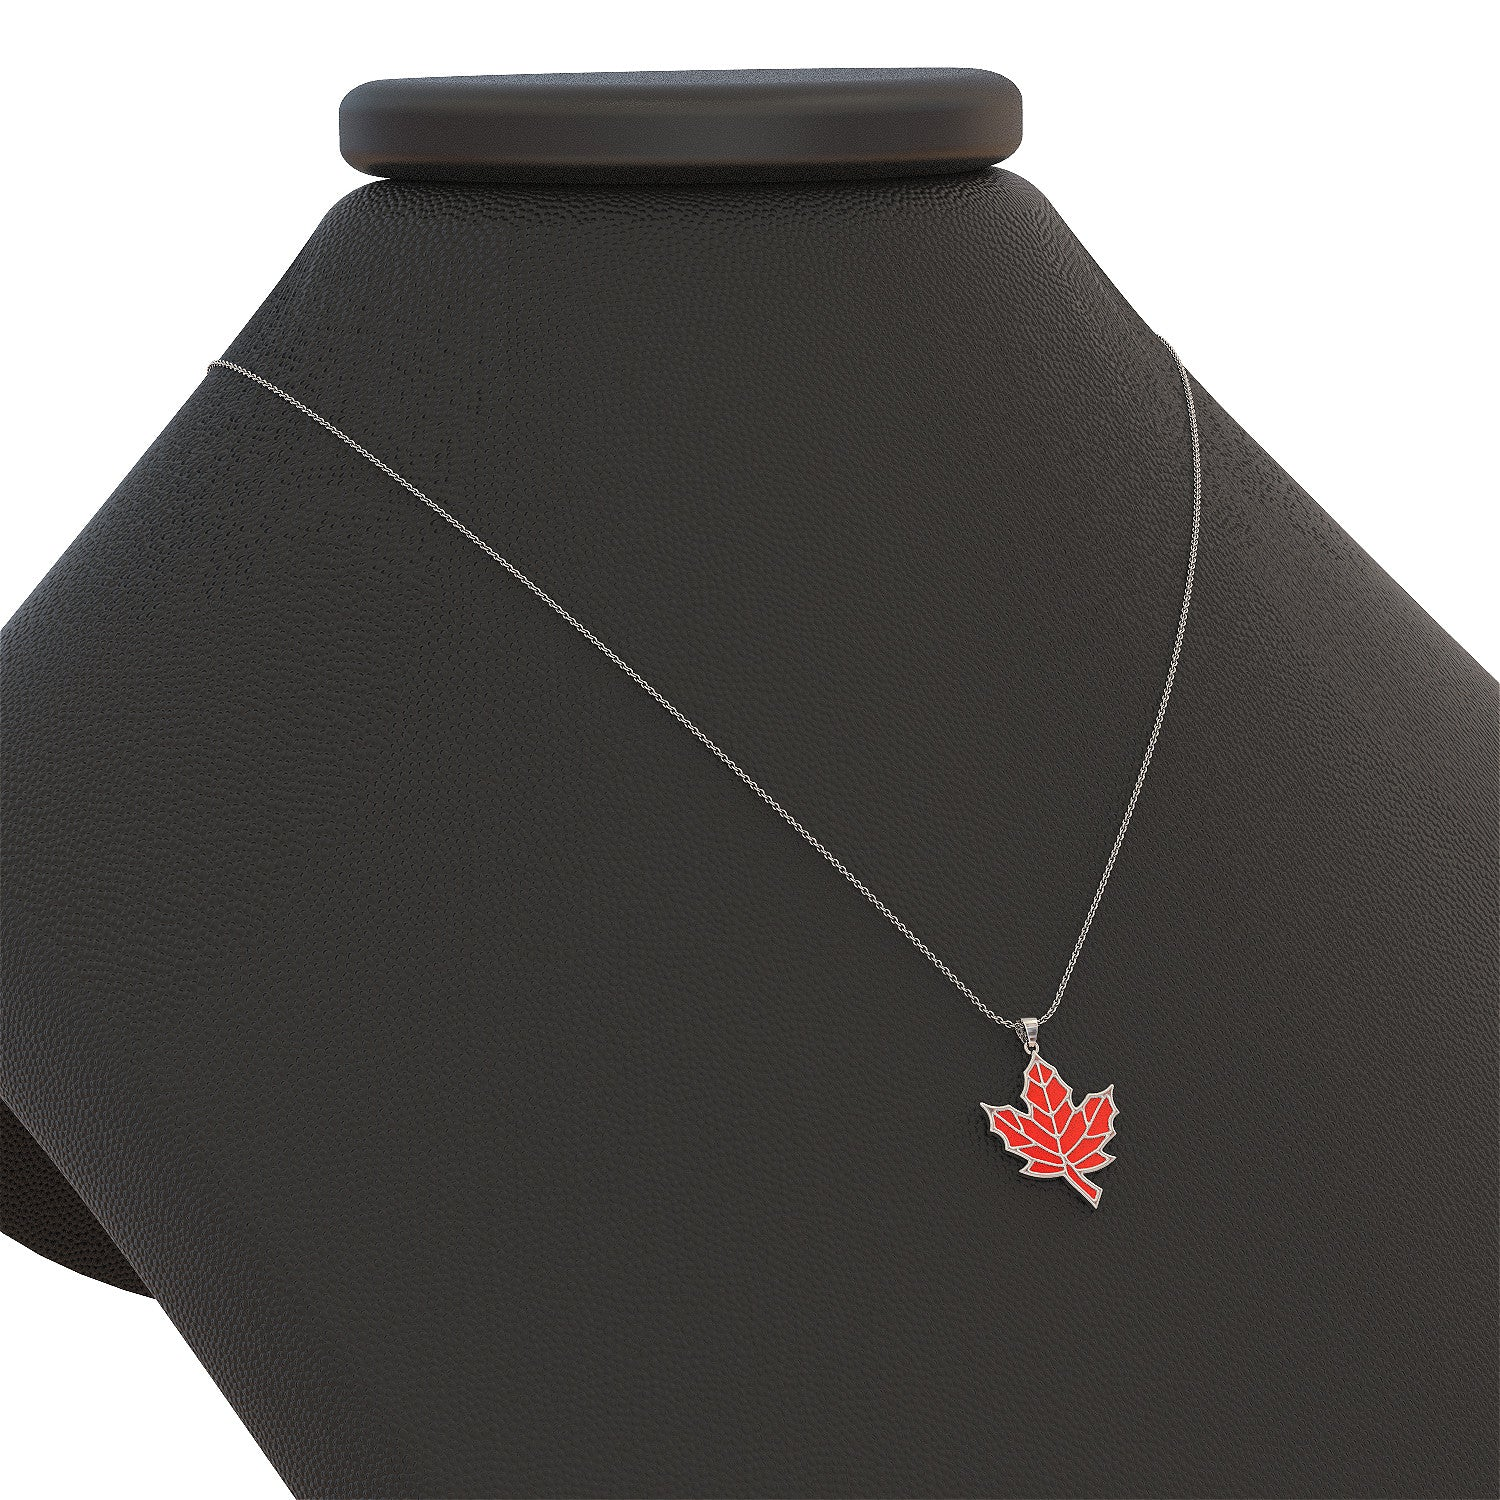 hMaple Leaf Necklace